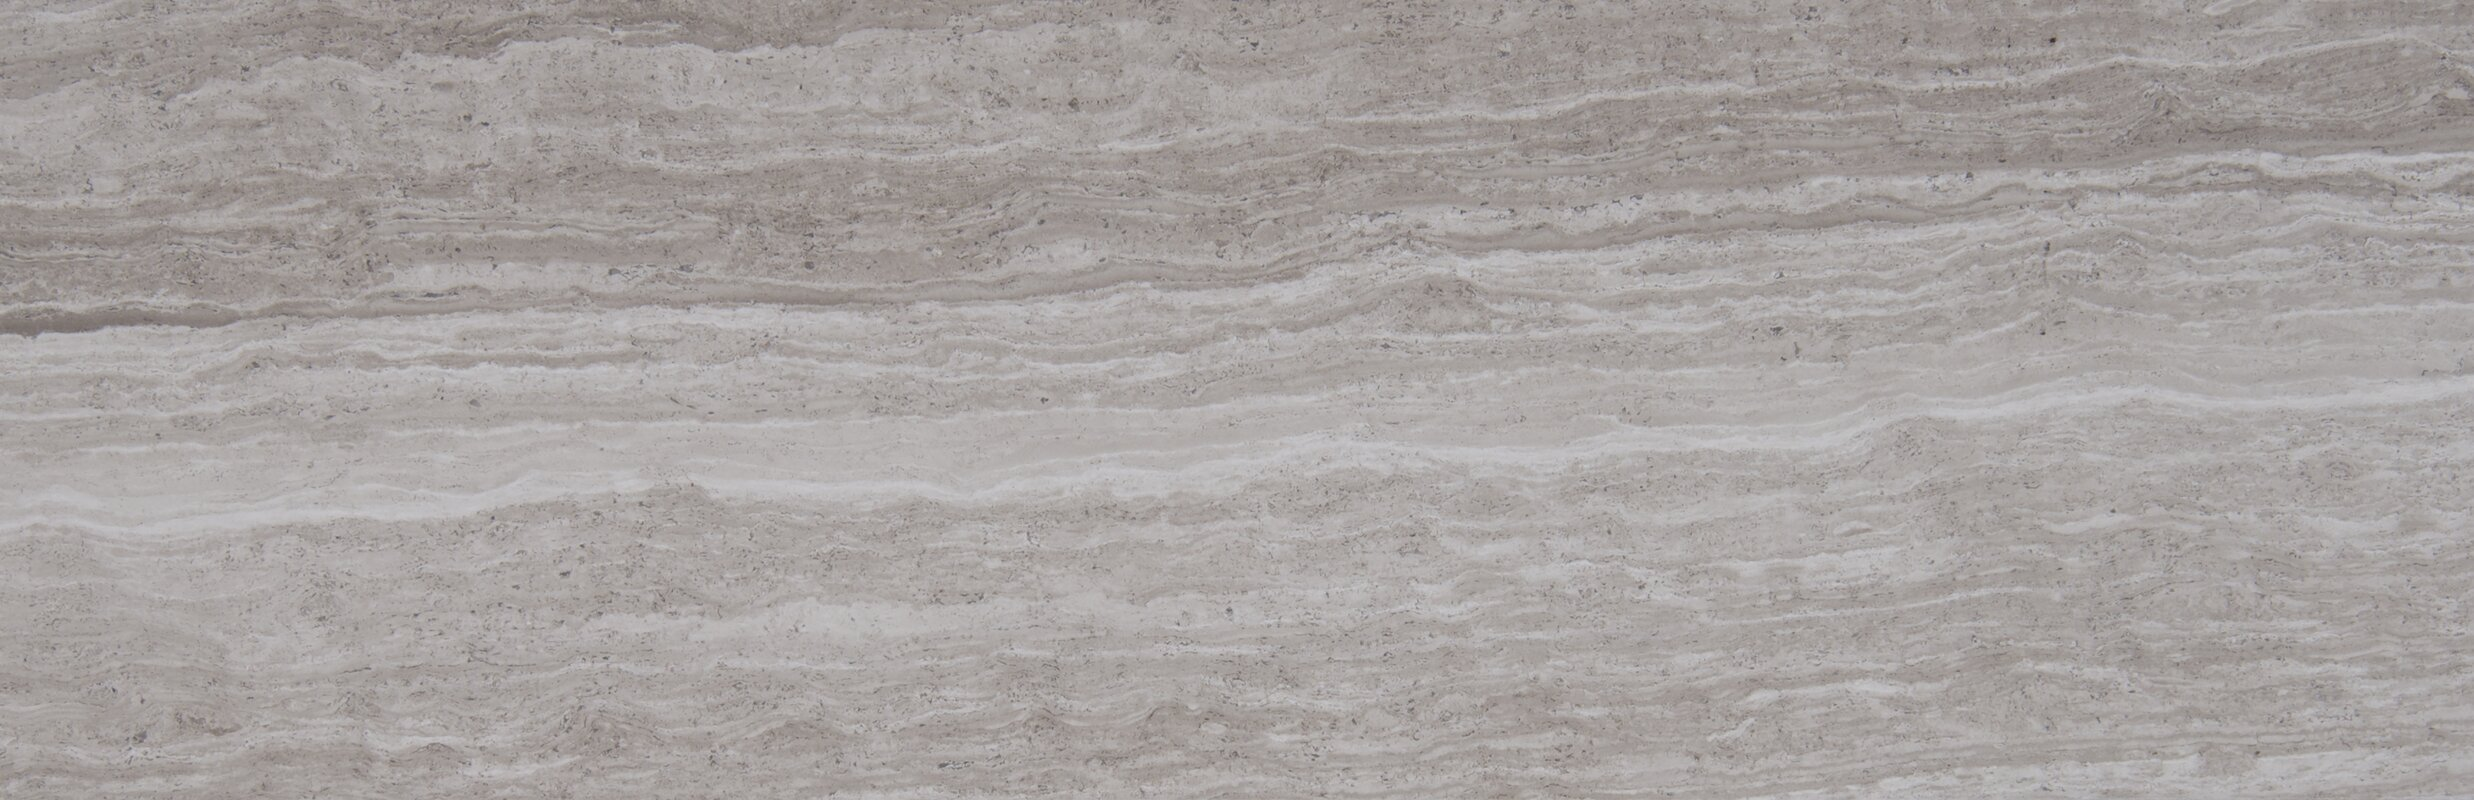 Msi 4 x 12 marble tile in white oak reviews wayfair 4 x 12 marble tile in dailygadgetfo Image collections